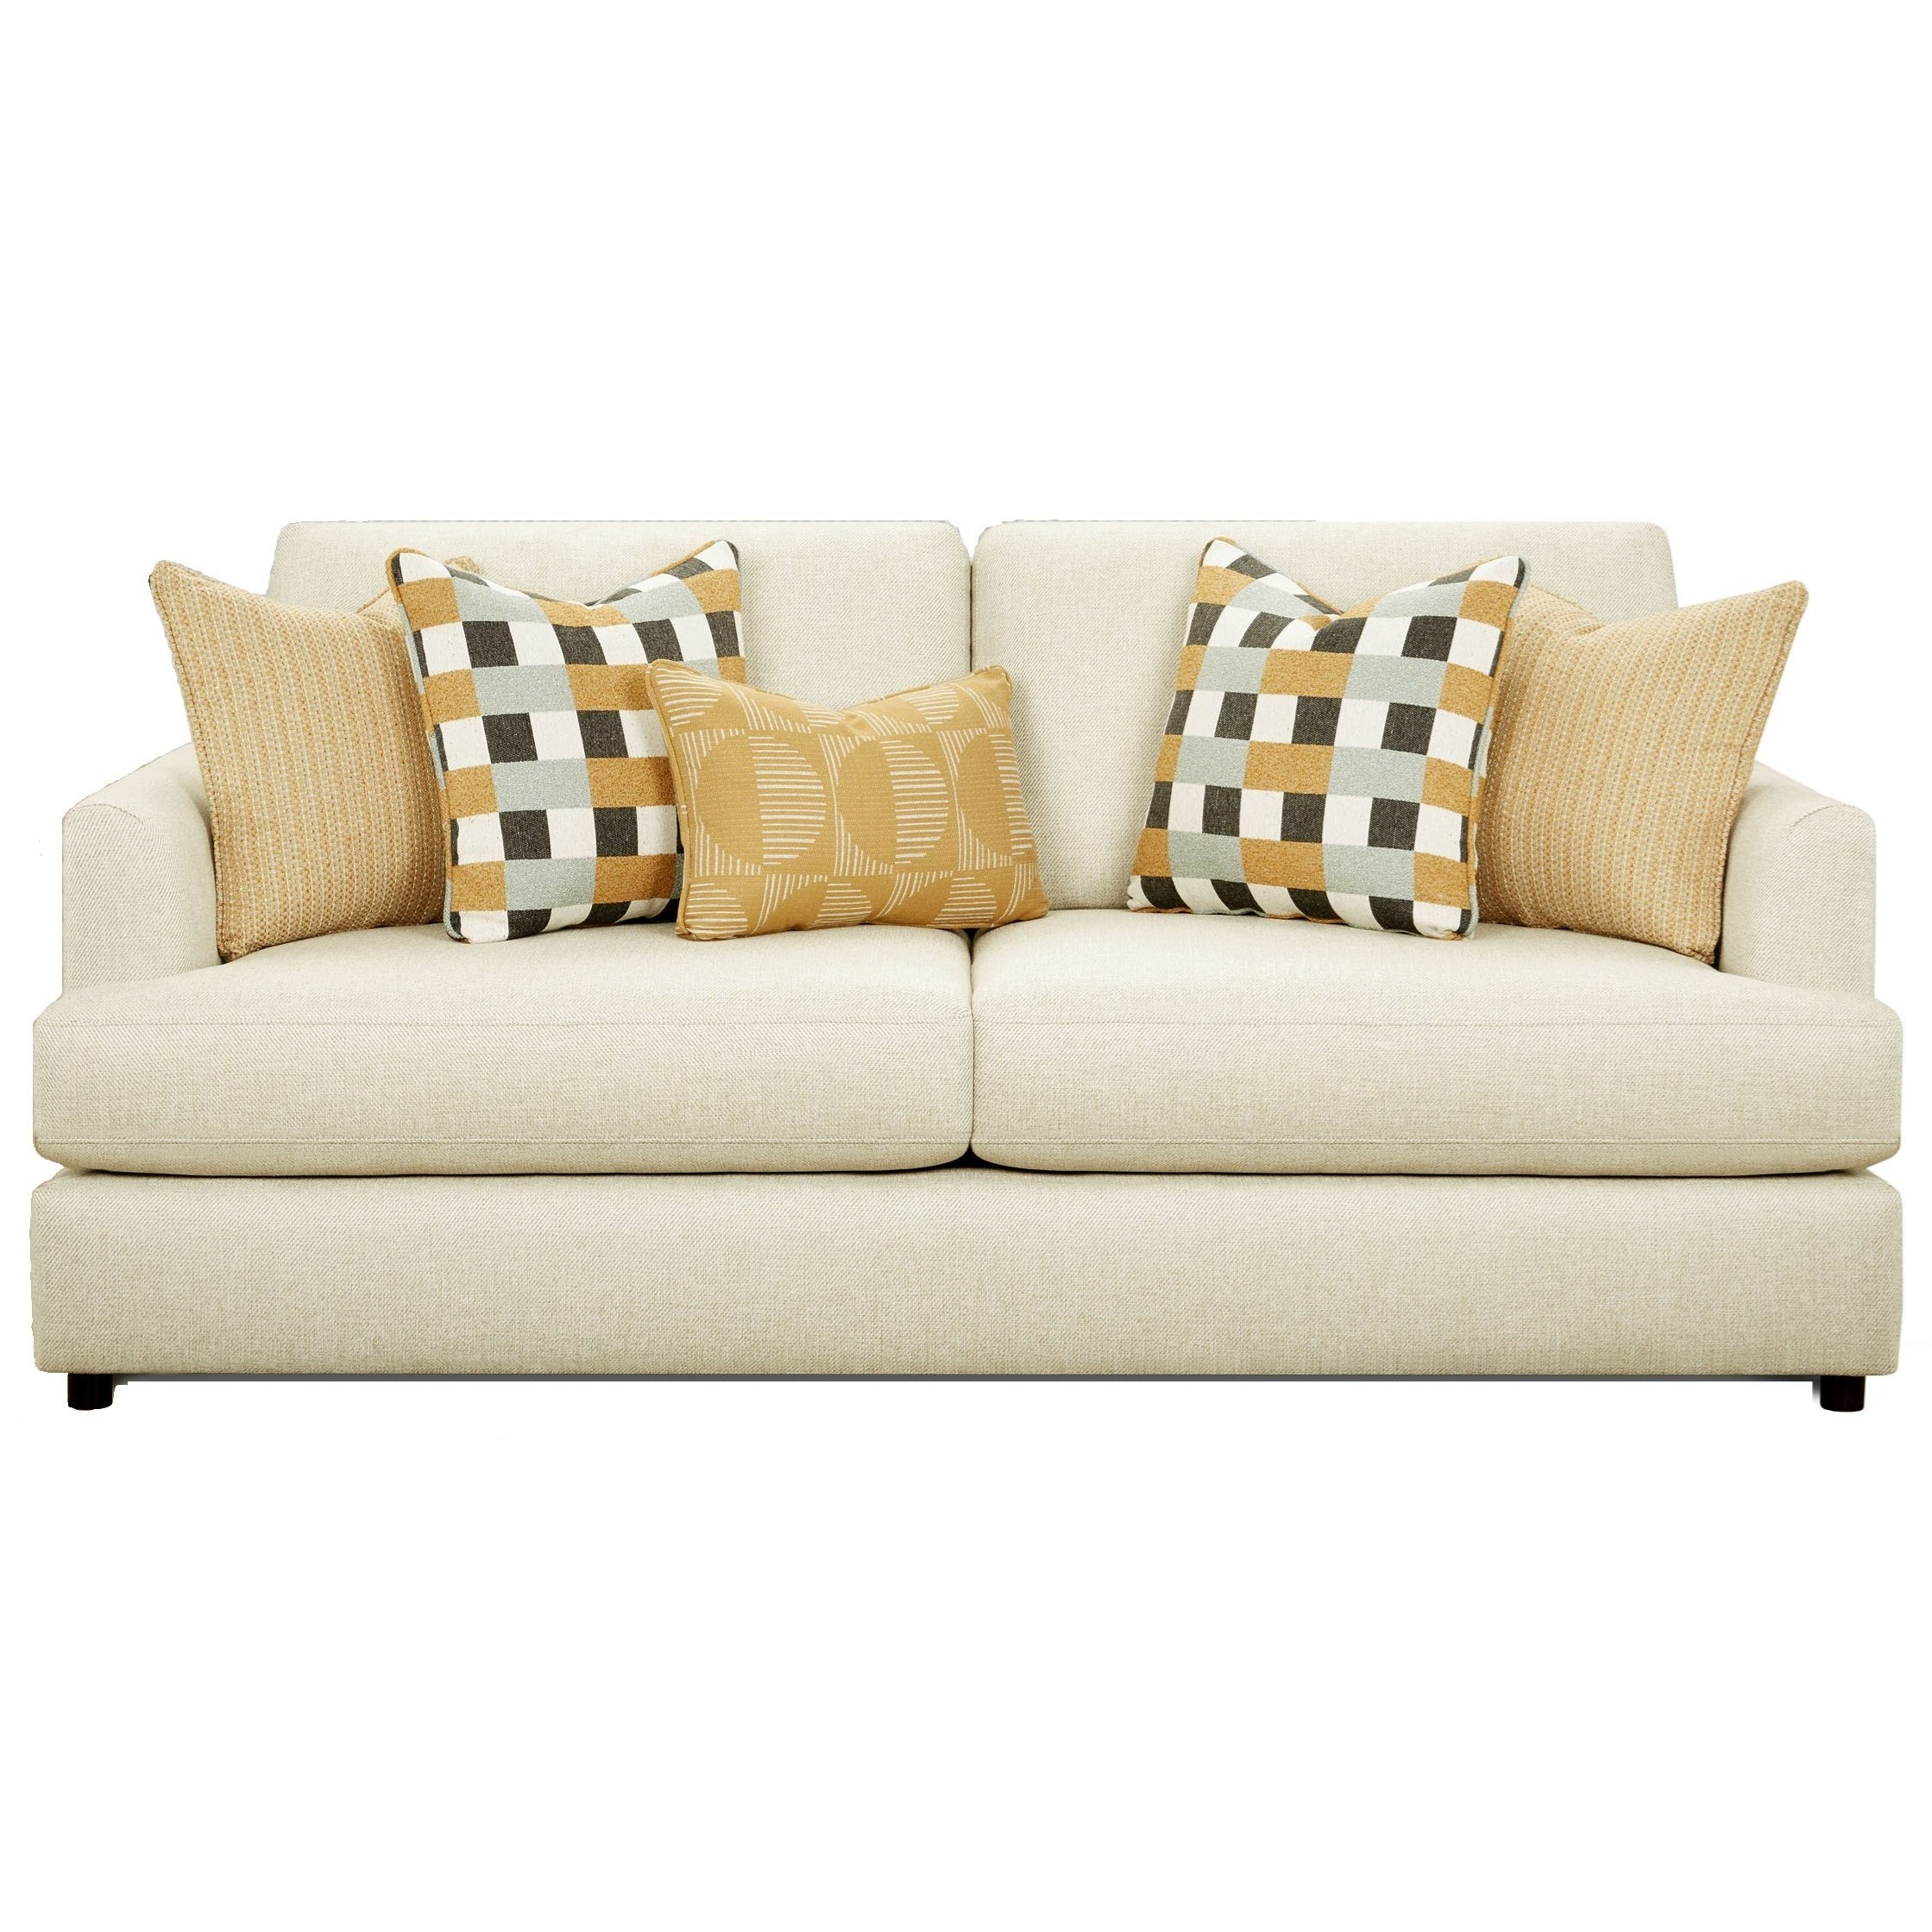 23-00 Sofa by Fusion Furniture at Furniture Superstore - Rochester, MN